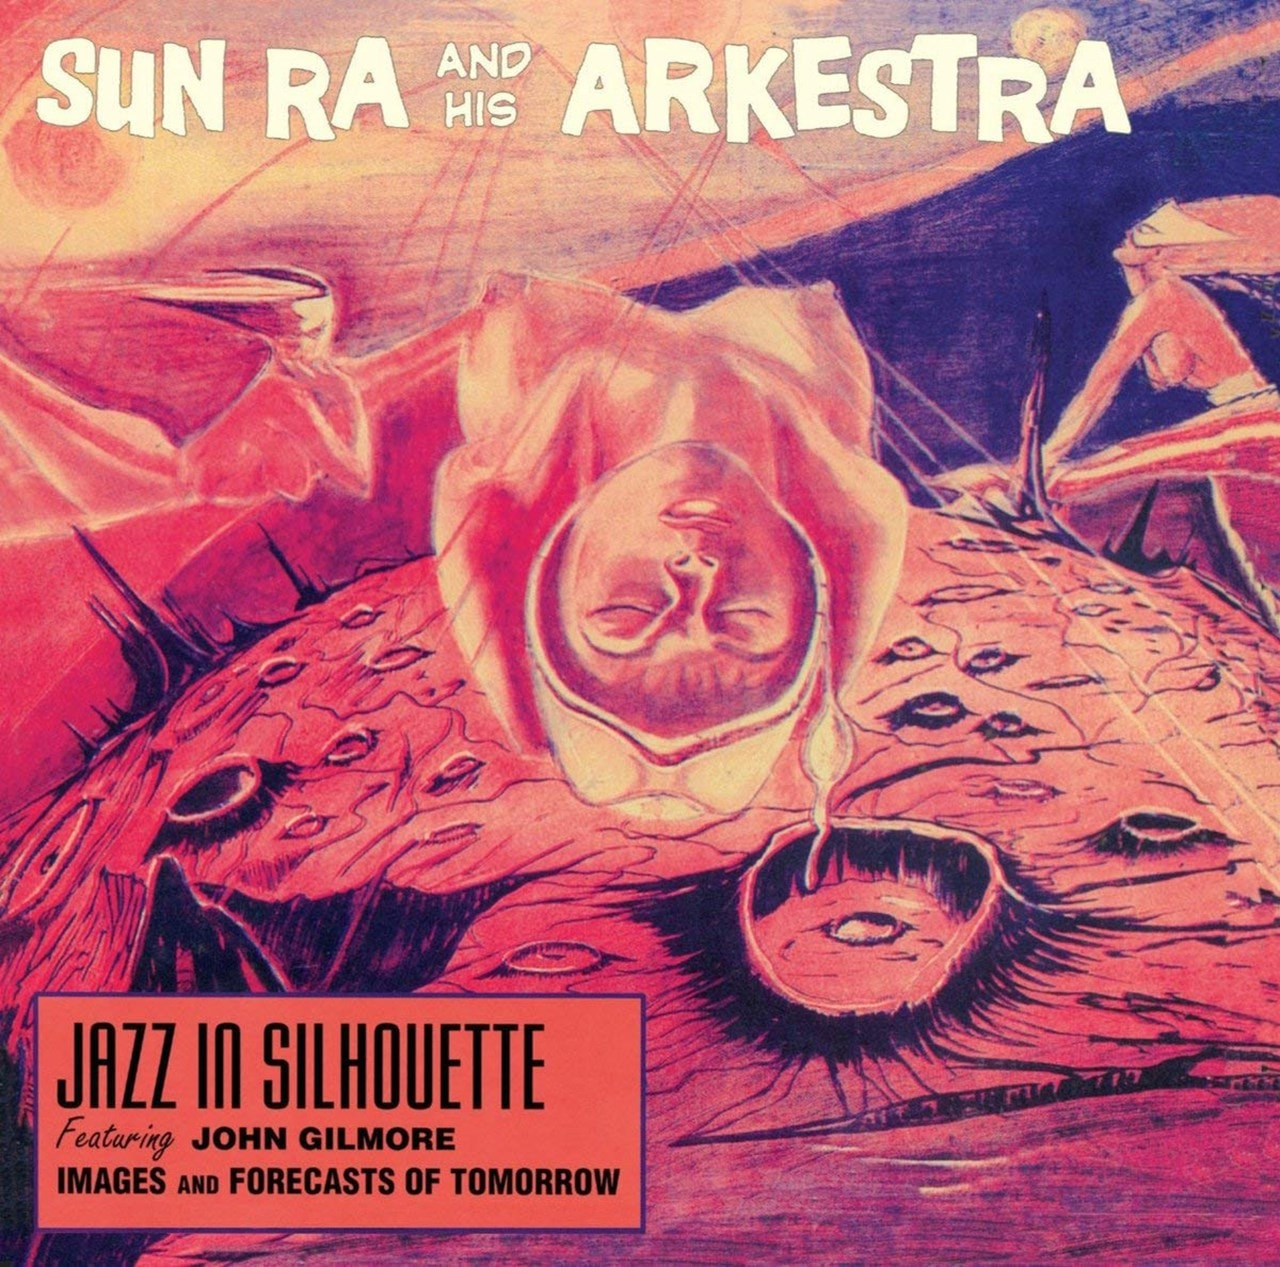 Jazz in Silhouette - 1